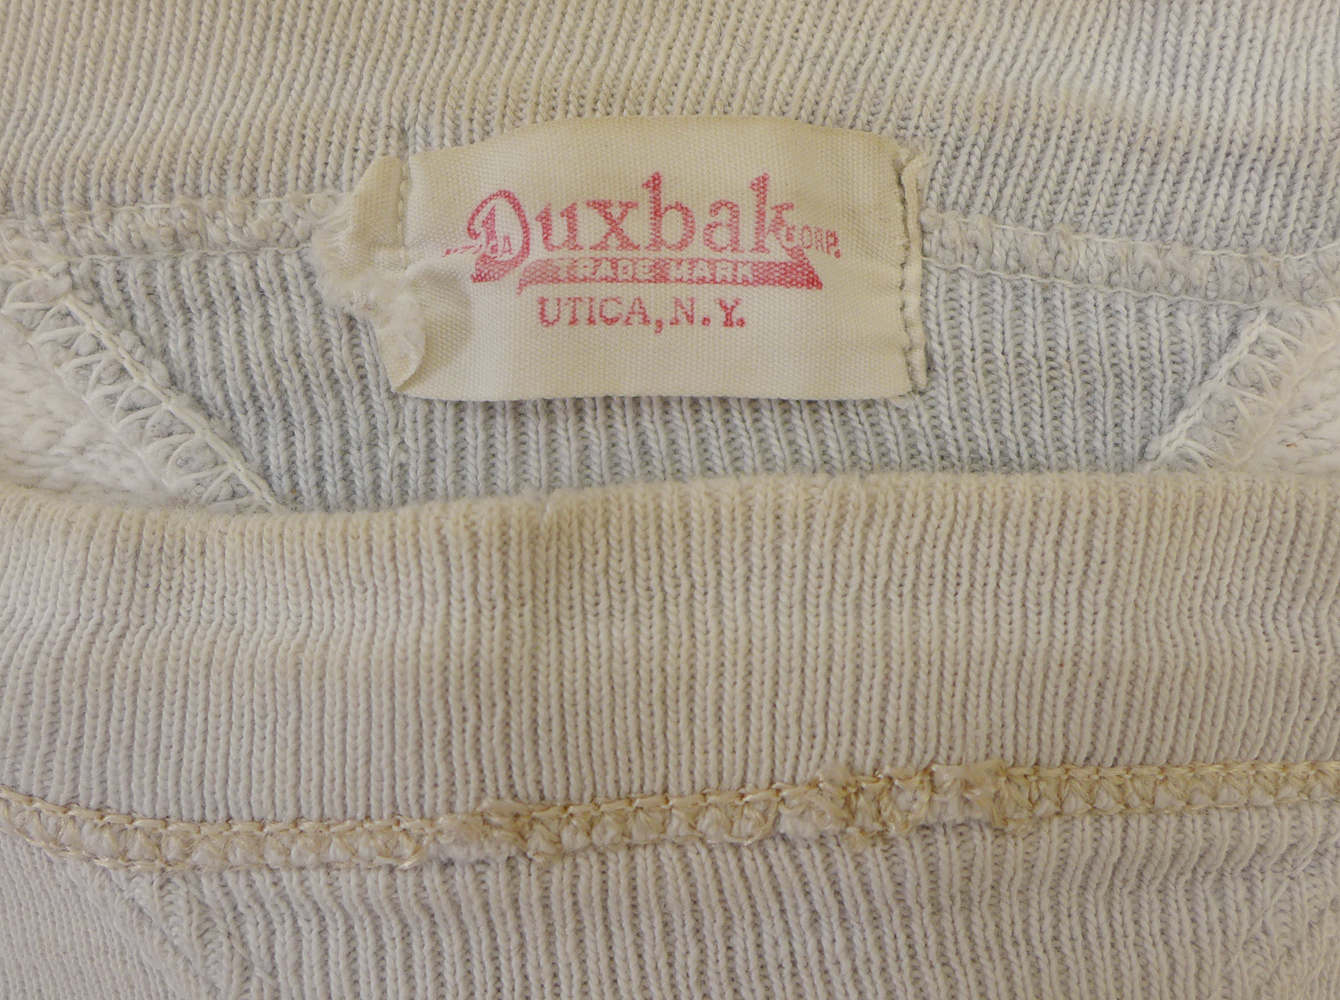 1ab9d98ed6c20 Gone from the hold but never from the heart. 1940's all cotton Utica Duxbak  Corp. 'Double V' athletic sweatshirt. Fare thee well!